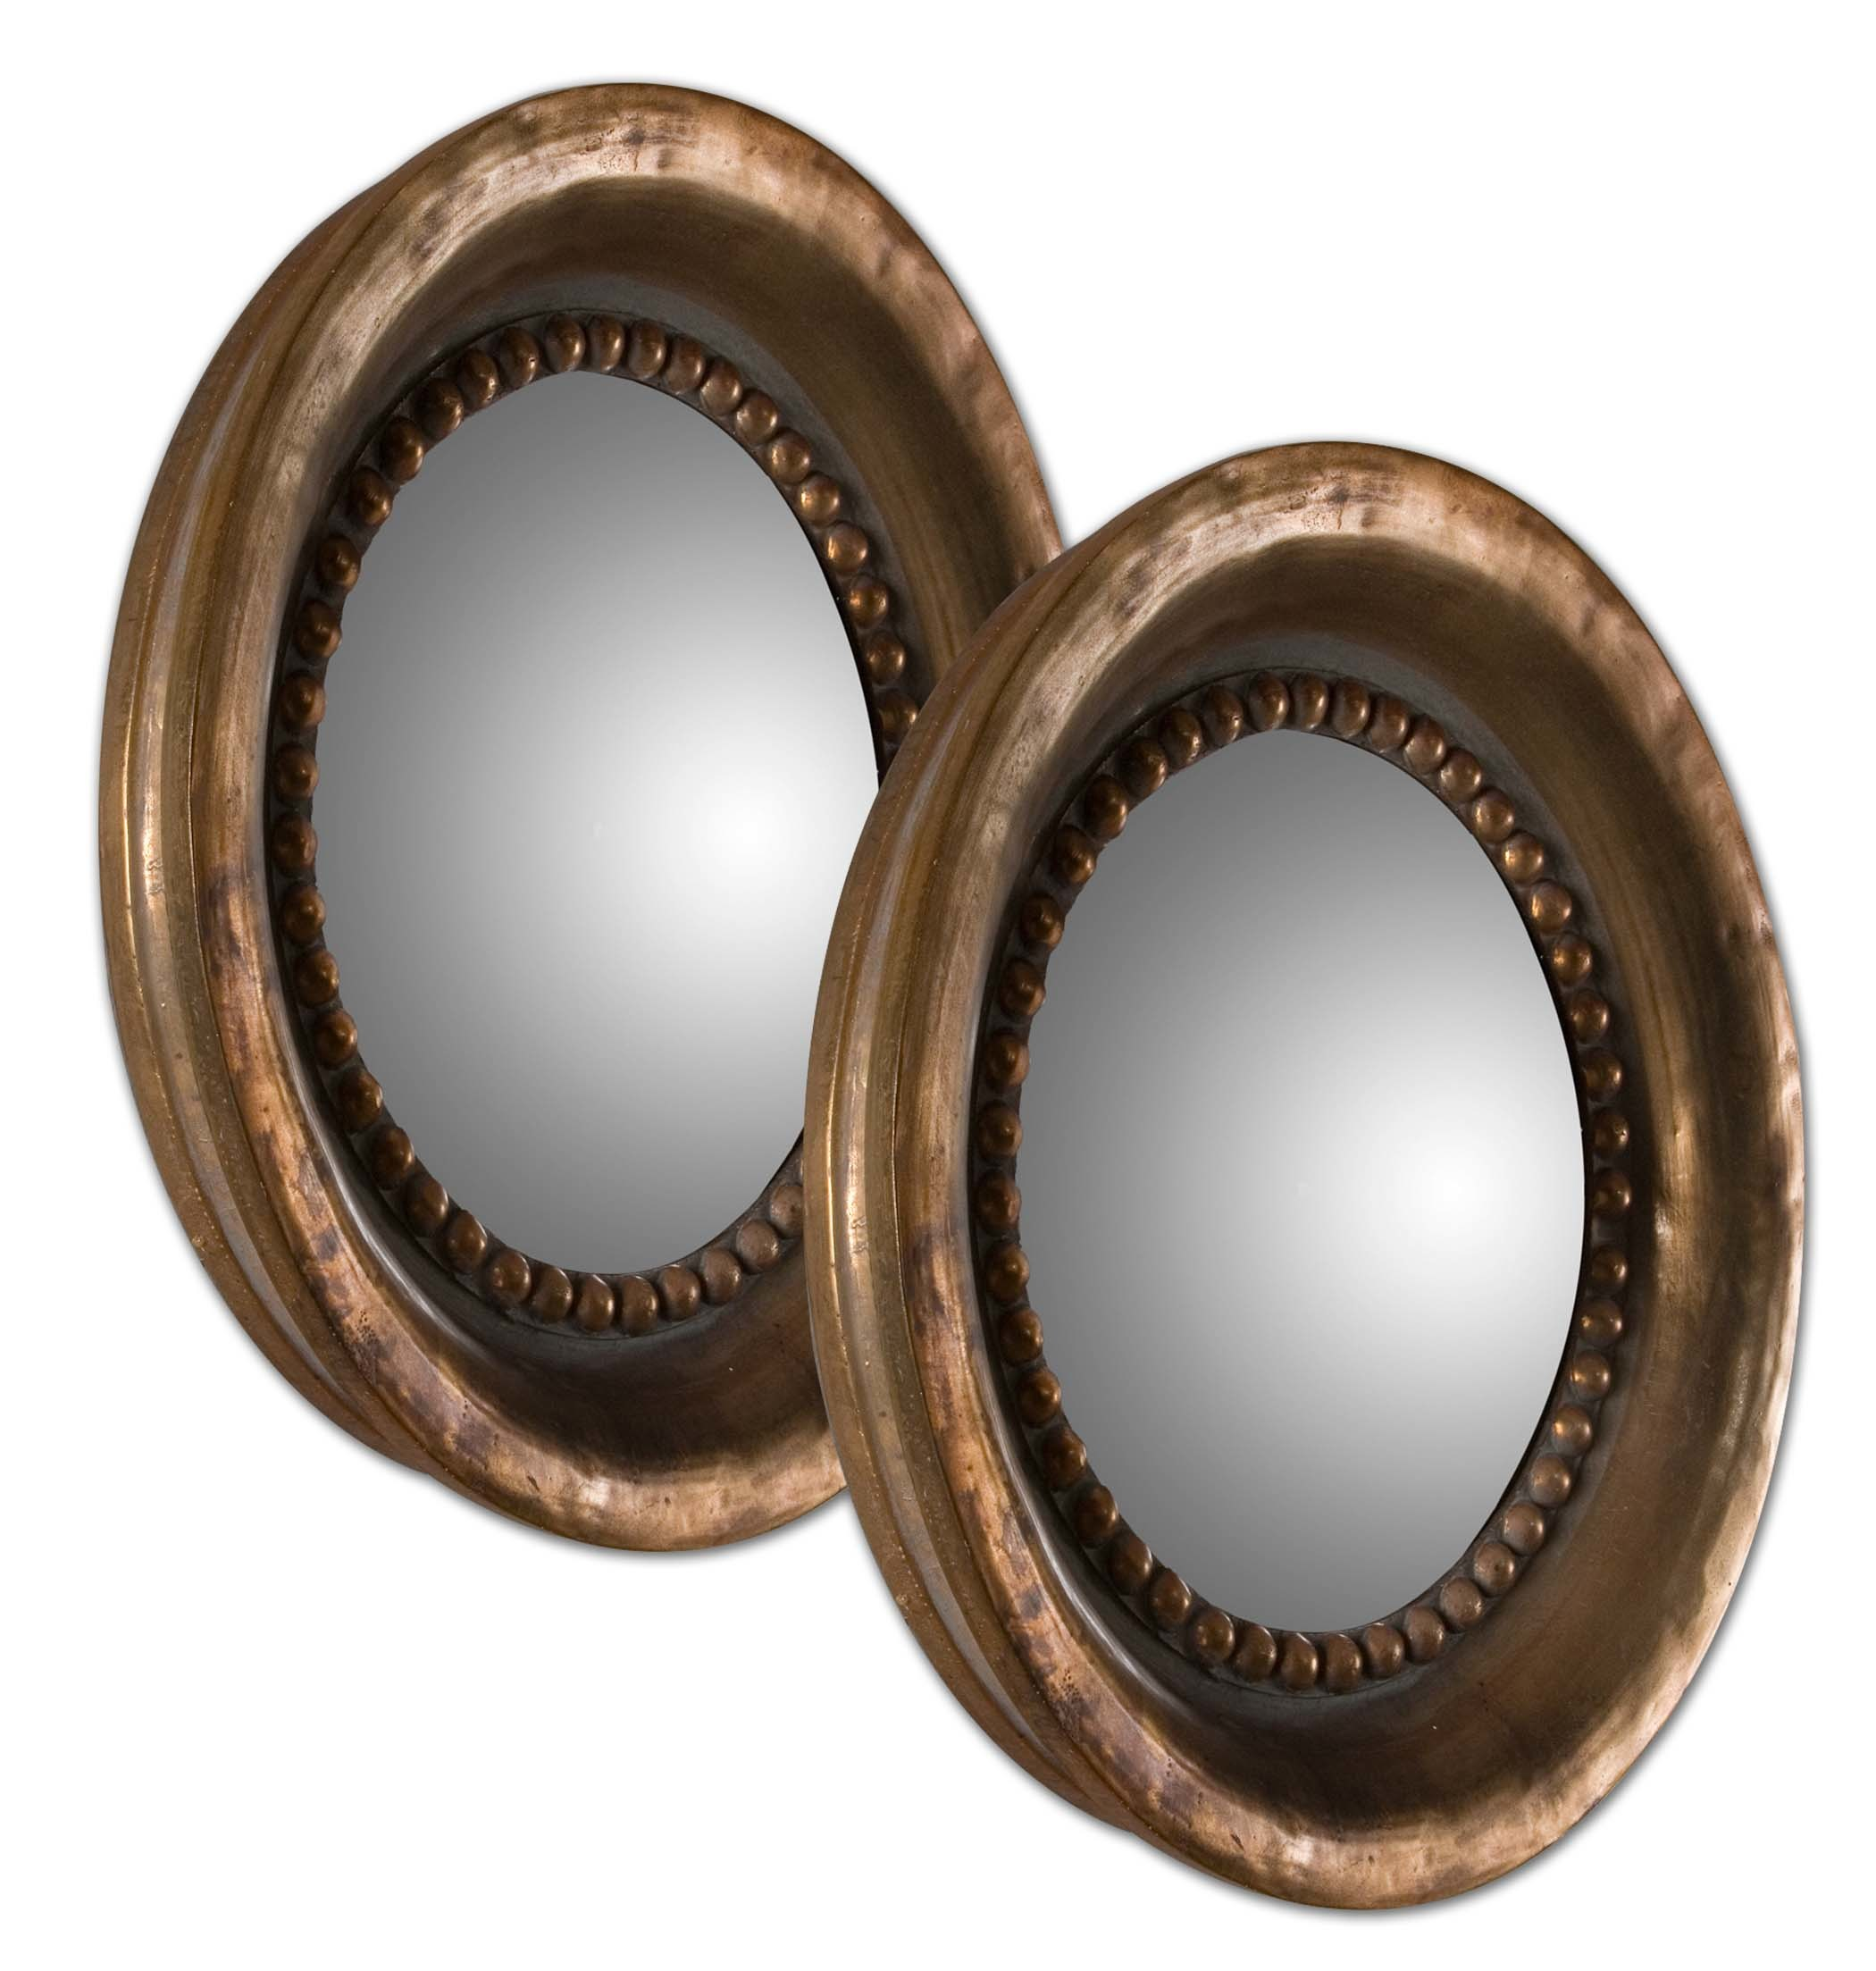 Hot Sales Mini Round Resin Framed Convex Decorative Mirrors